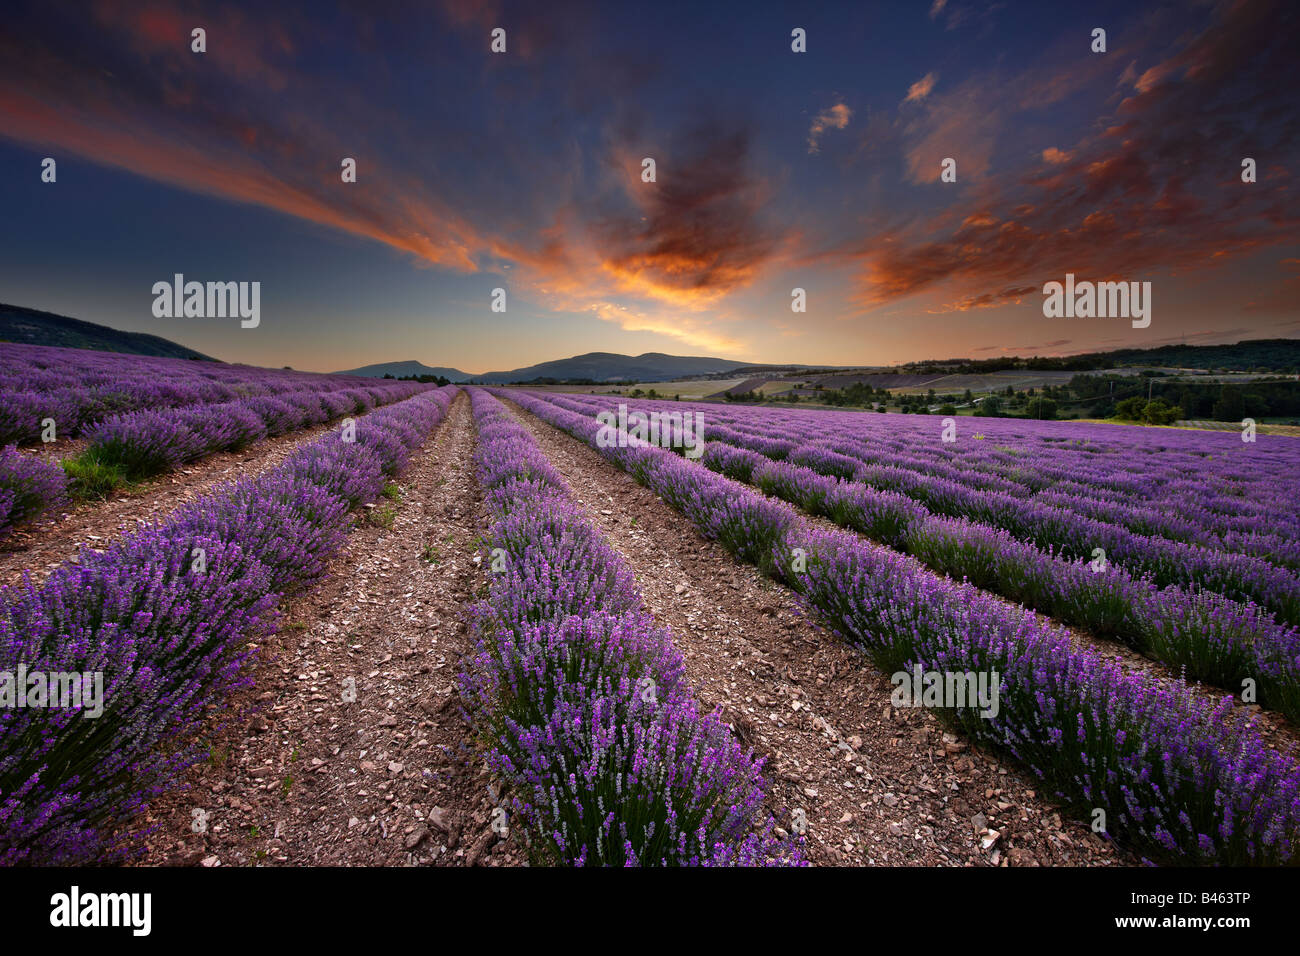 dawn in a lavender field nr Sault, the Vaucluse, Provence, France - Stock Image